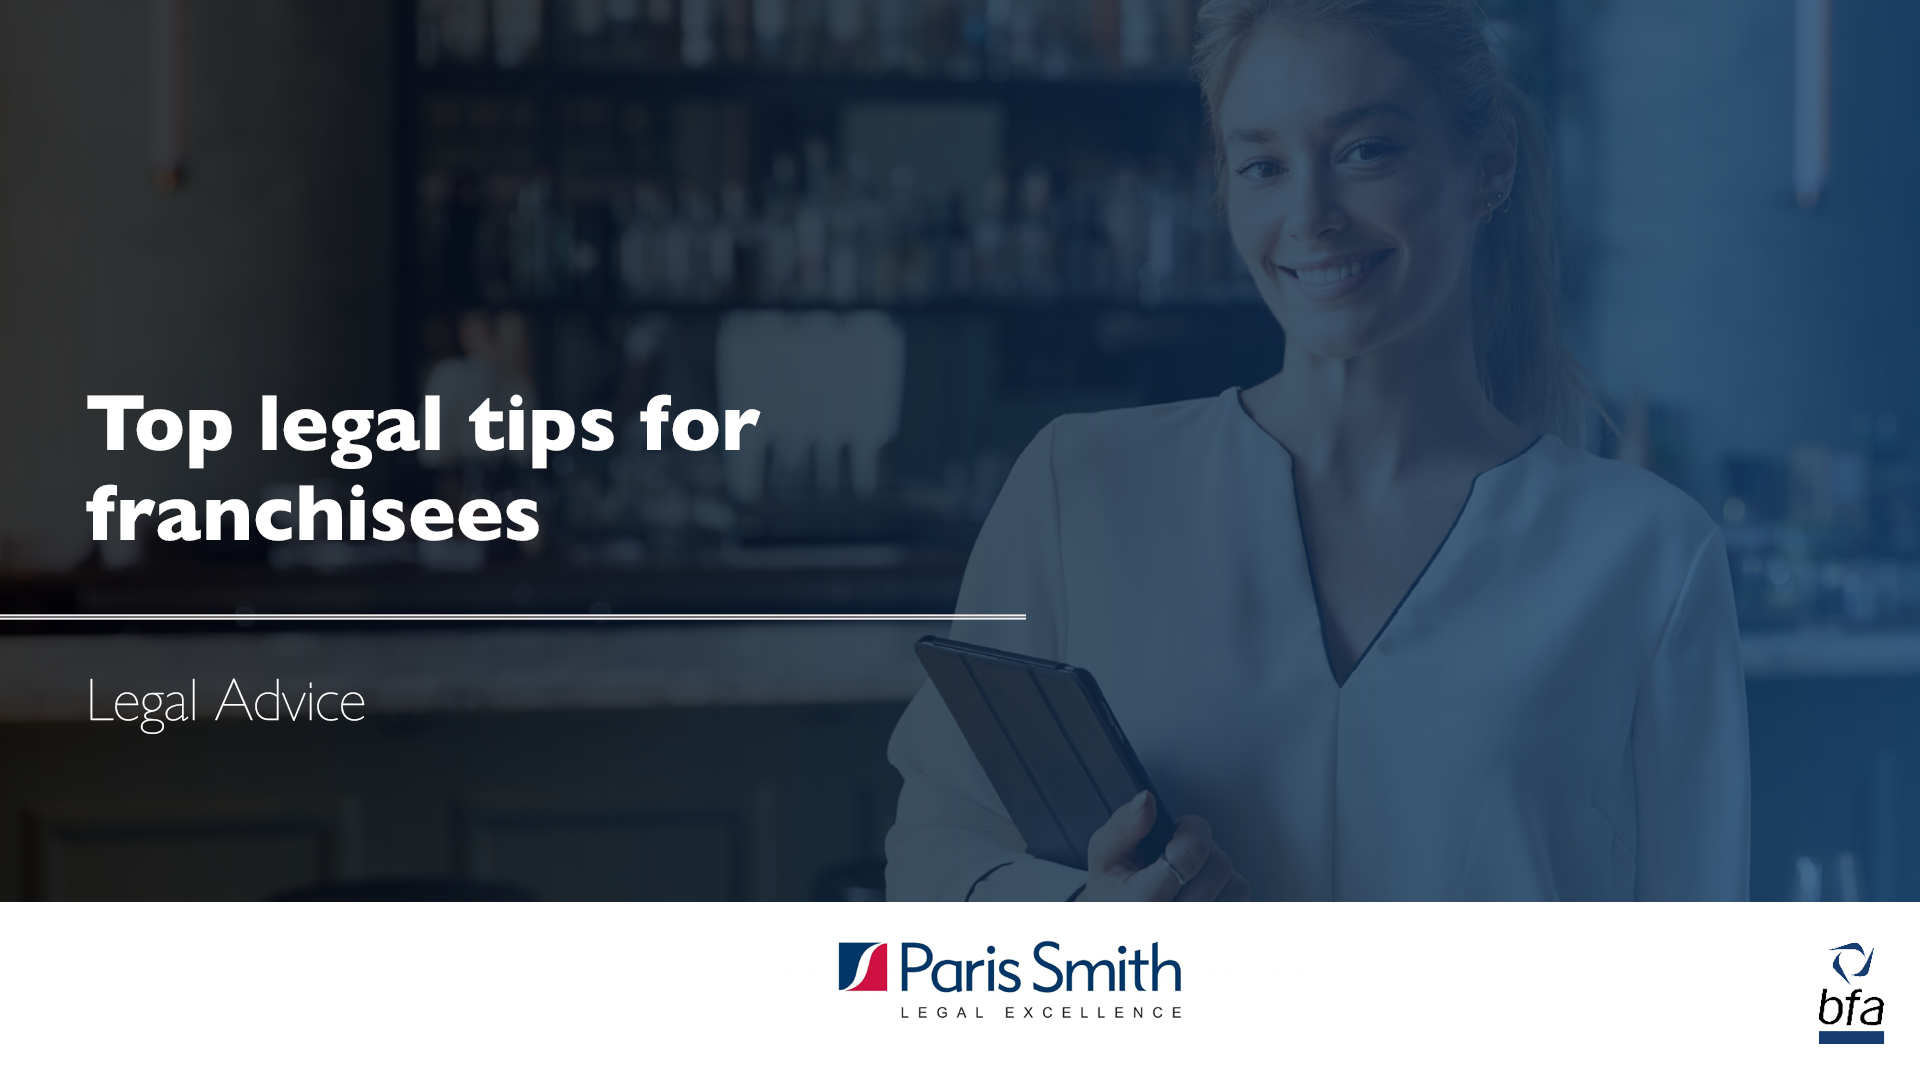 Top legal tips for franchisees